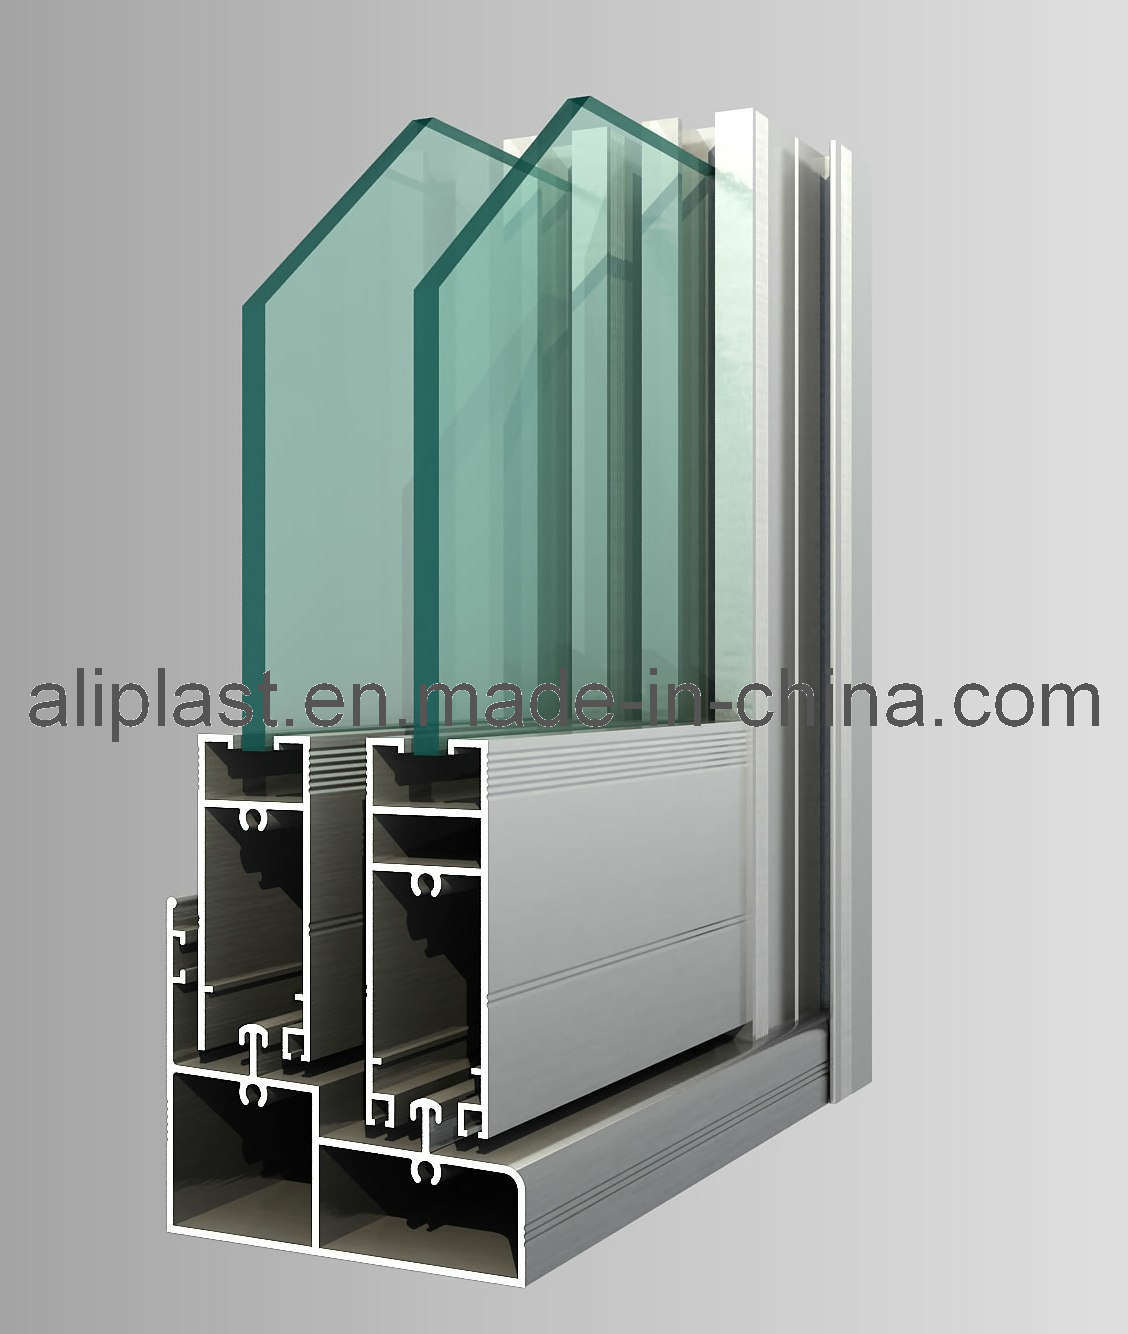 china nice aluminum window profile china aluminium